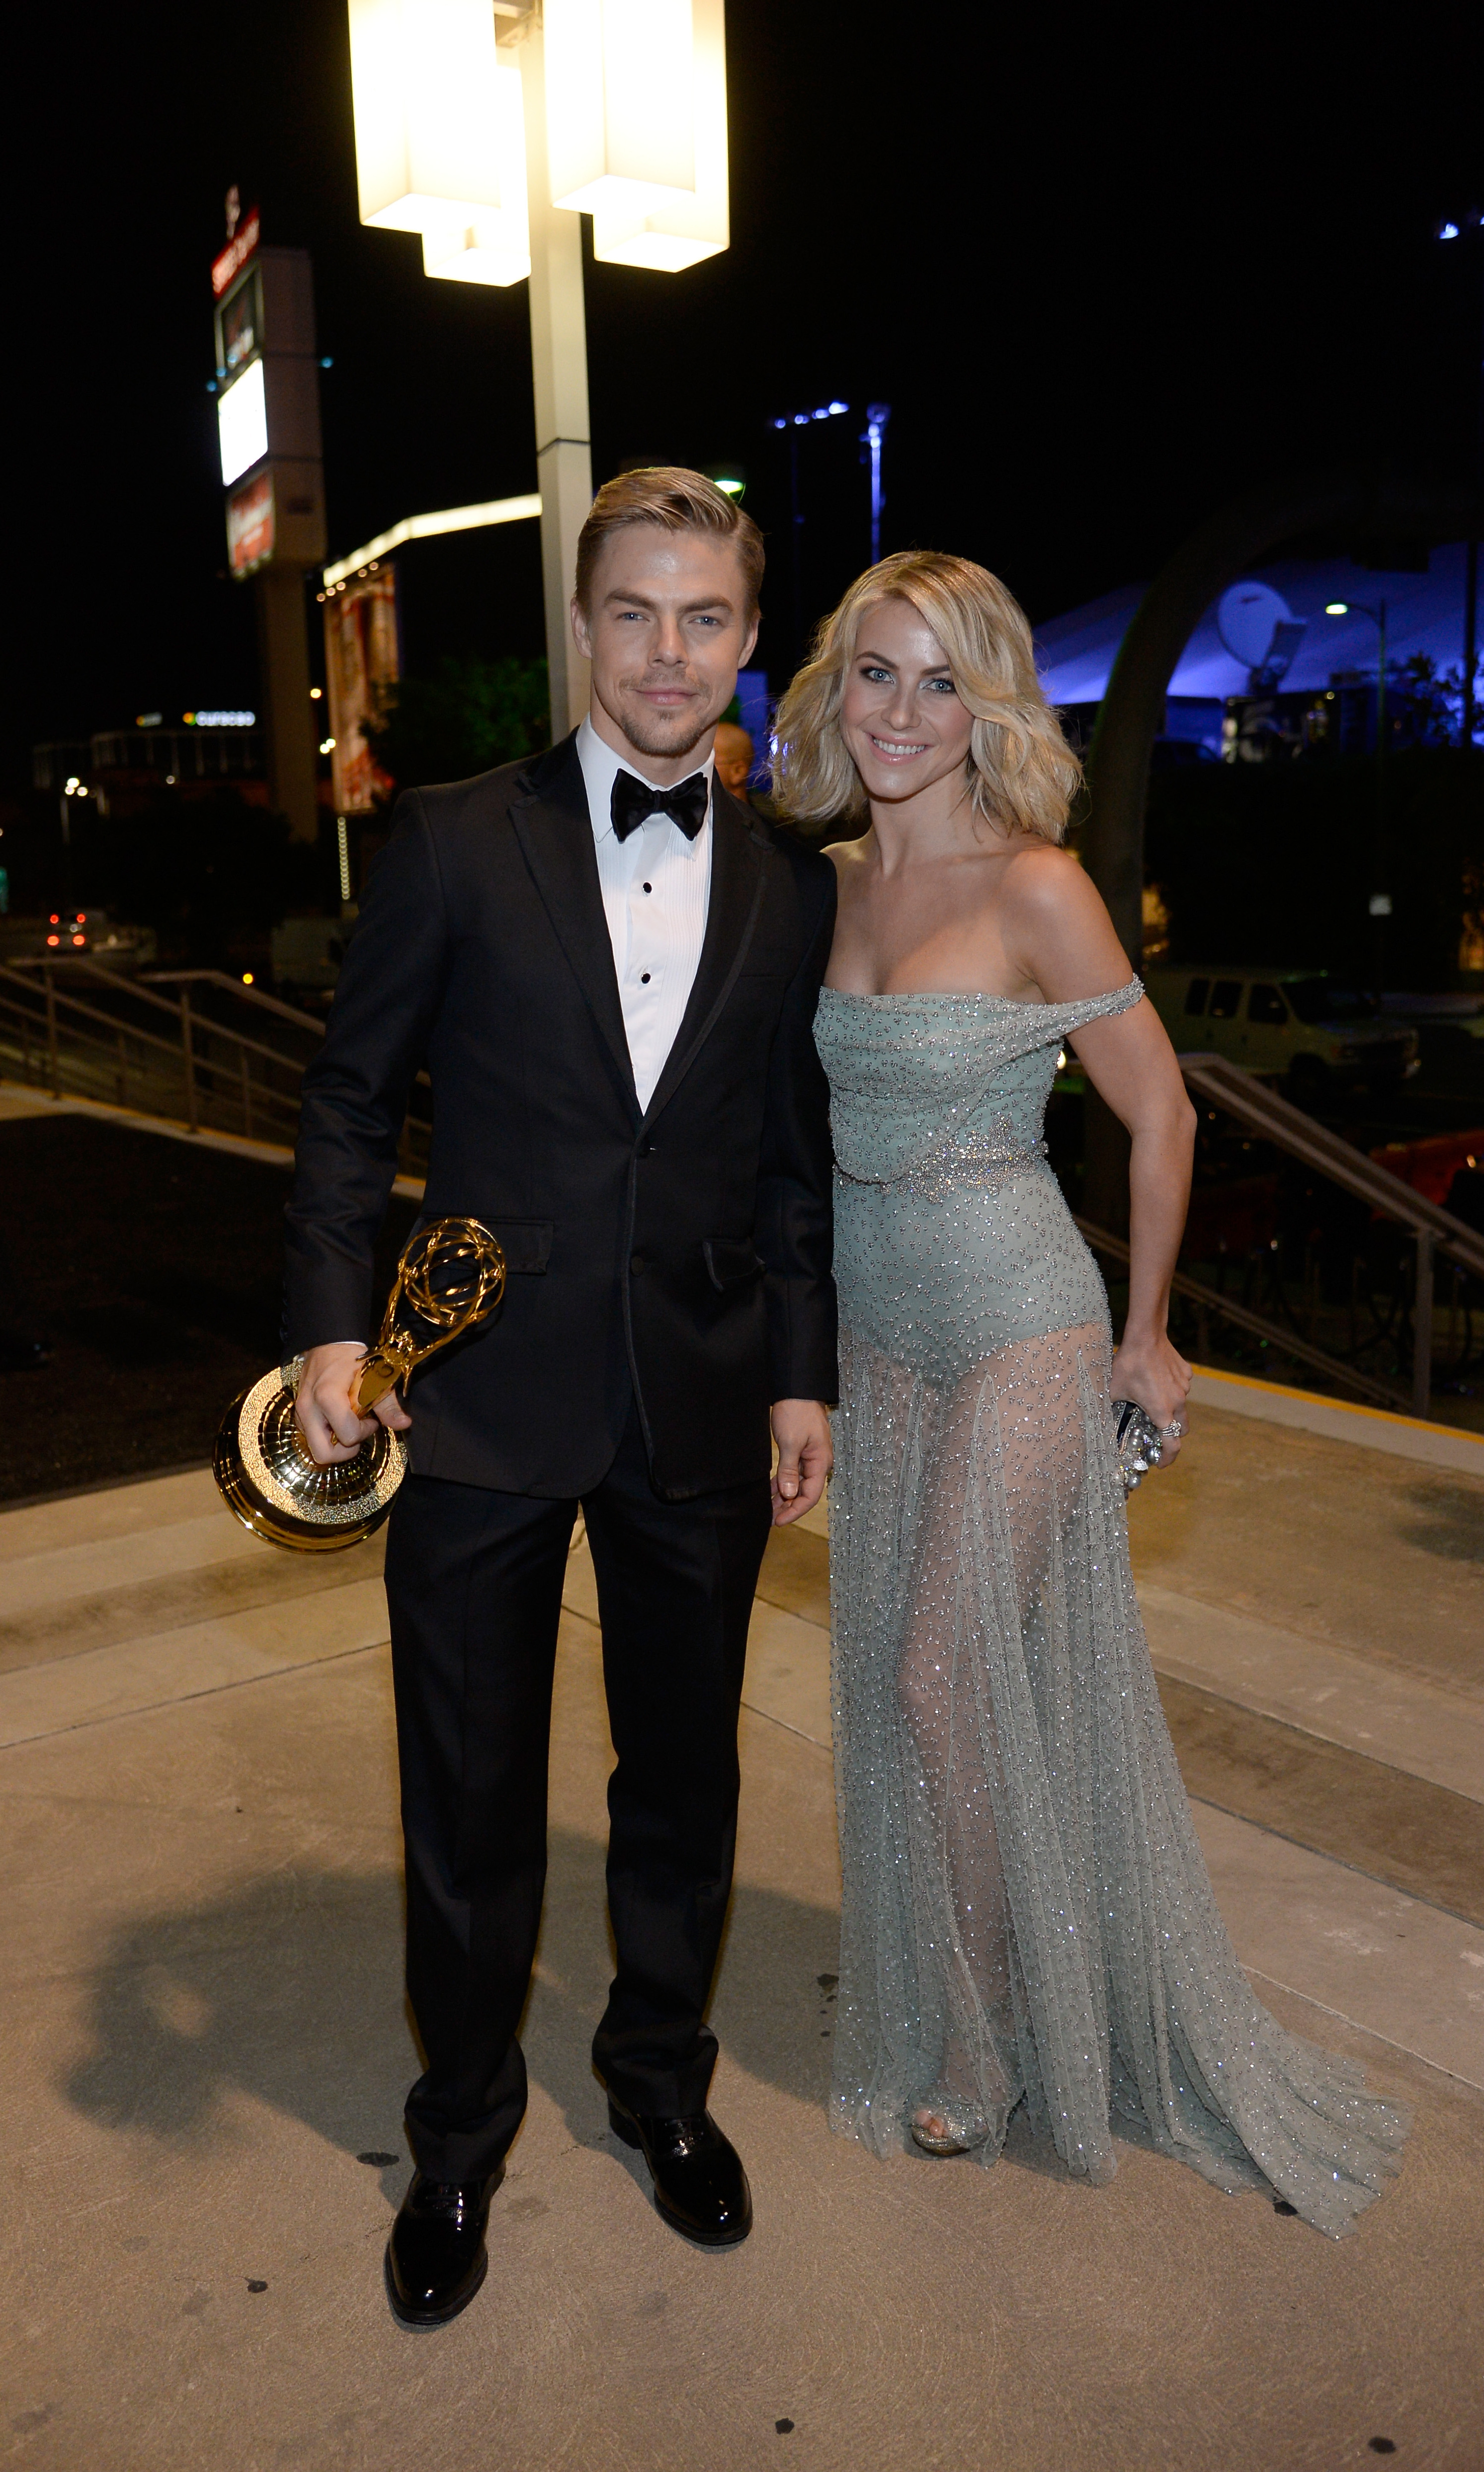 Stunning siblings Derek and Julianne Hough celebrate Derek's Best Choreography Award for 'Dancing With The Stars' at the Governor's Ball.